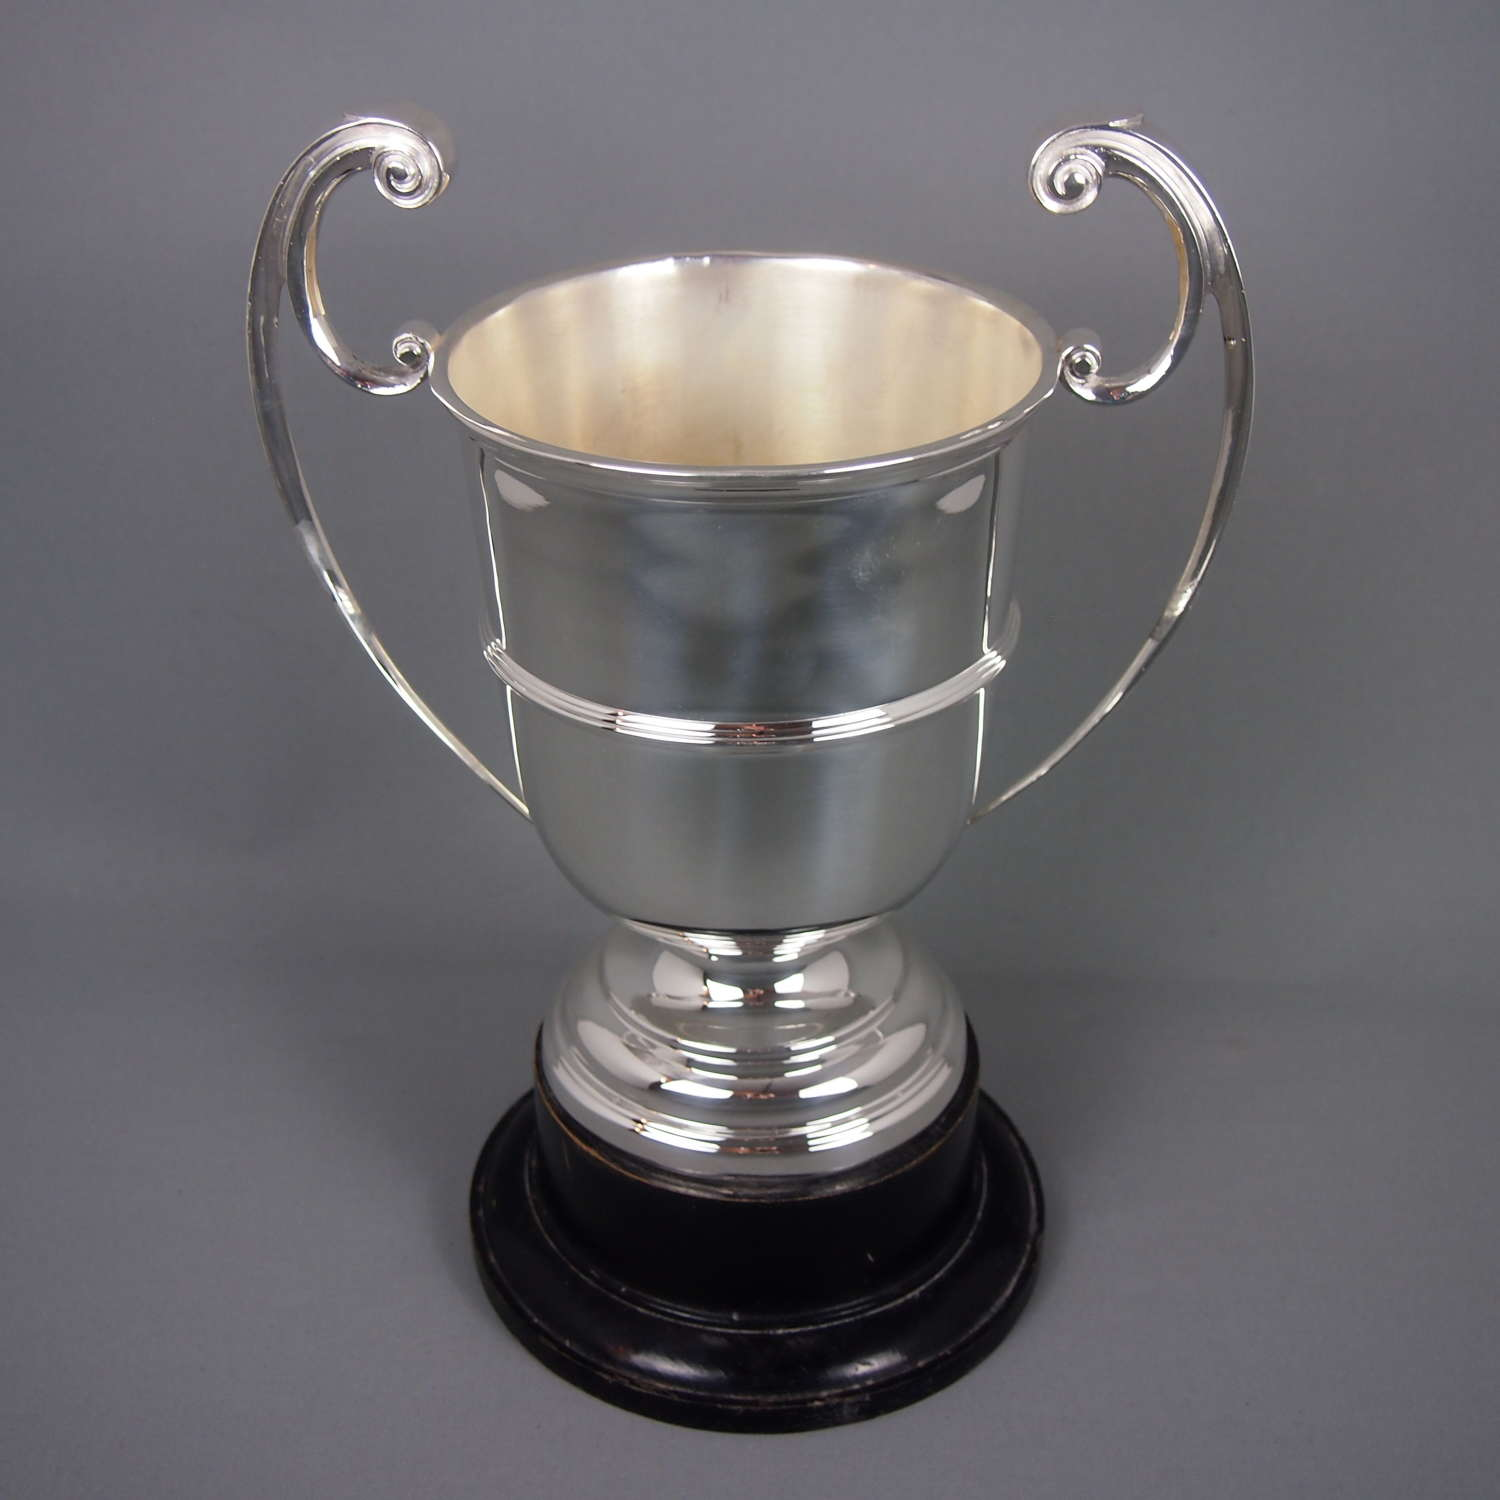 Vintage silver plated classic trophy on stand. W8501